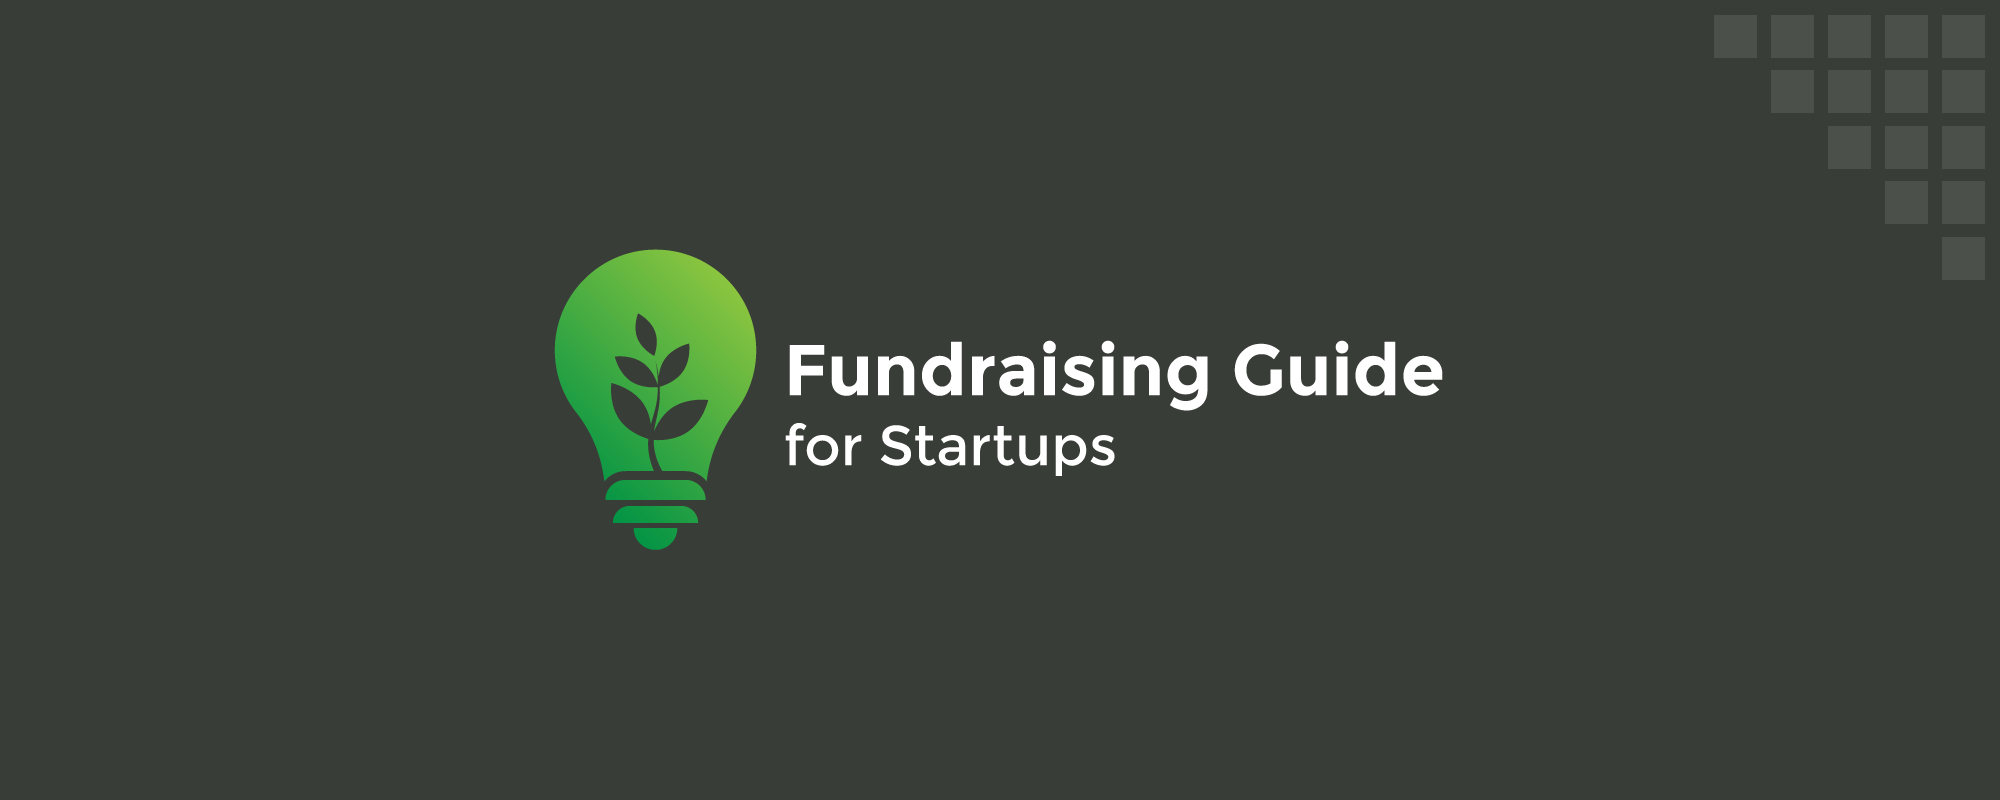 A Fundraising Guide for Startups to Find the Right Investor